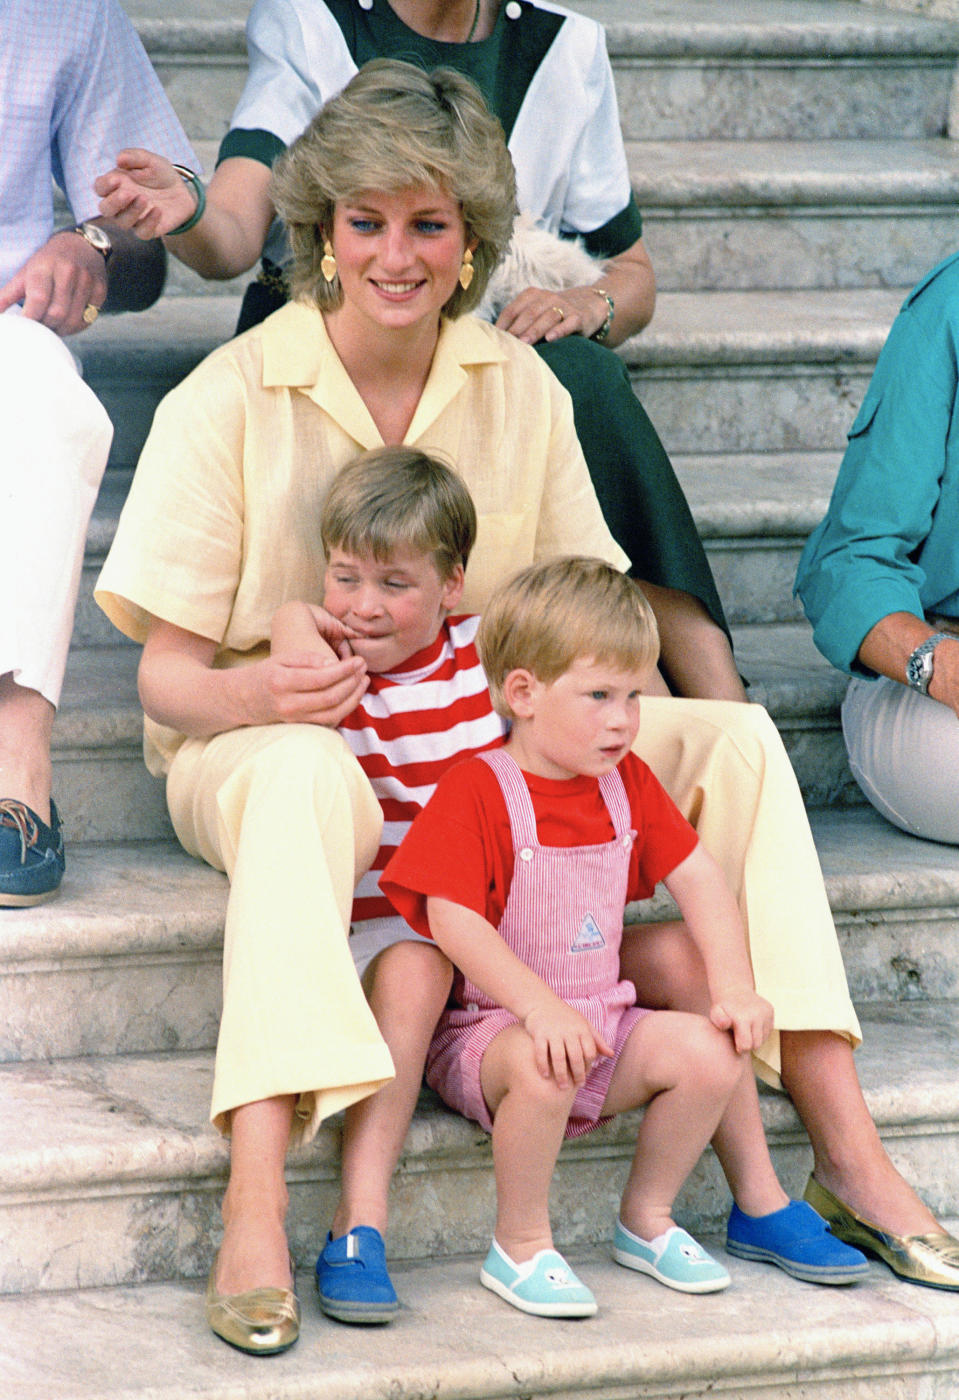 """FILE - In this Aug. 9, 1987 file photo, Britain's Princess Diana of Wales smiles as she sits with her sons, Princes Harry, foreground, and William, on the steps of the Royal Palace on the island of Mallorca, Spain. For someone who began her life in the spotlight as """"Shy Di,"""" Princess Diana became an unlikely, revolutionary during her years in the House of Windsor. She helped modernize the monarchy by making it more personal, changing the way the royal family related to people. By interacting more intimately with the public -- kneeling to the level of children, sitting on edge of a patient's hospital bed, writing personal notes to her fans -- she set an example that has been followed by other royals as the monarchy worked to become more human and remain relevant in the 21st century. (AP Photo/John Redman, File)"""